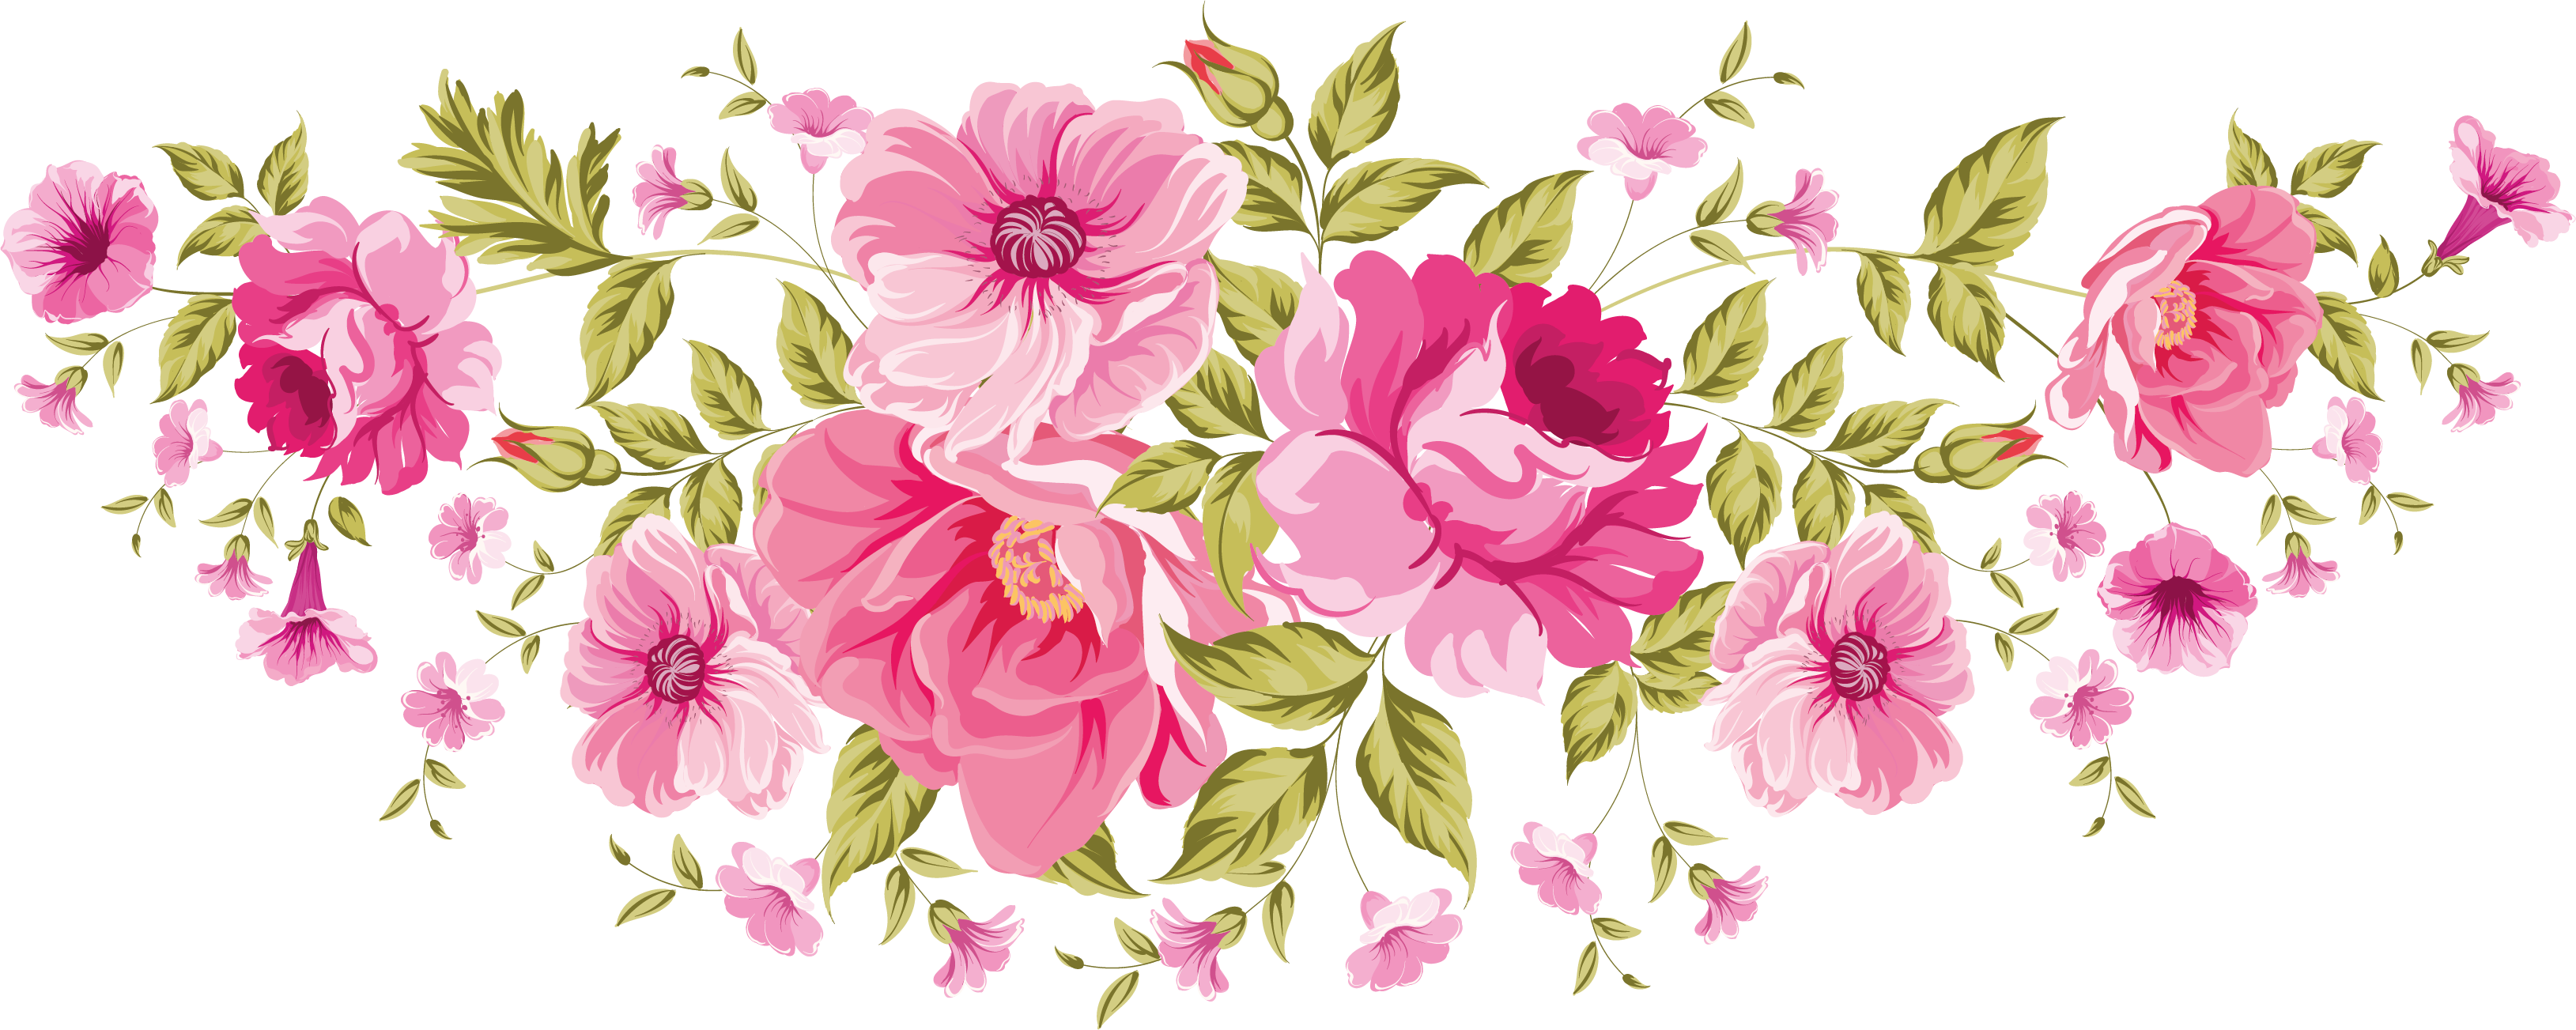 Flower banner clipart. Flowers png xxl decoupage